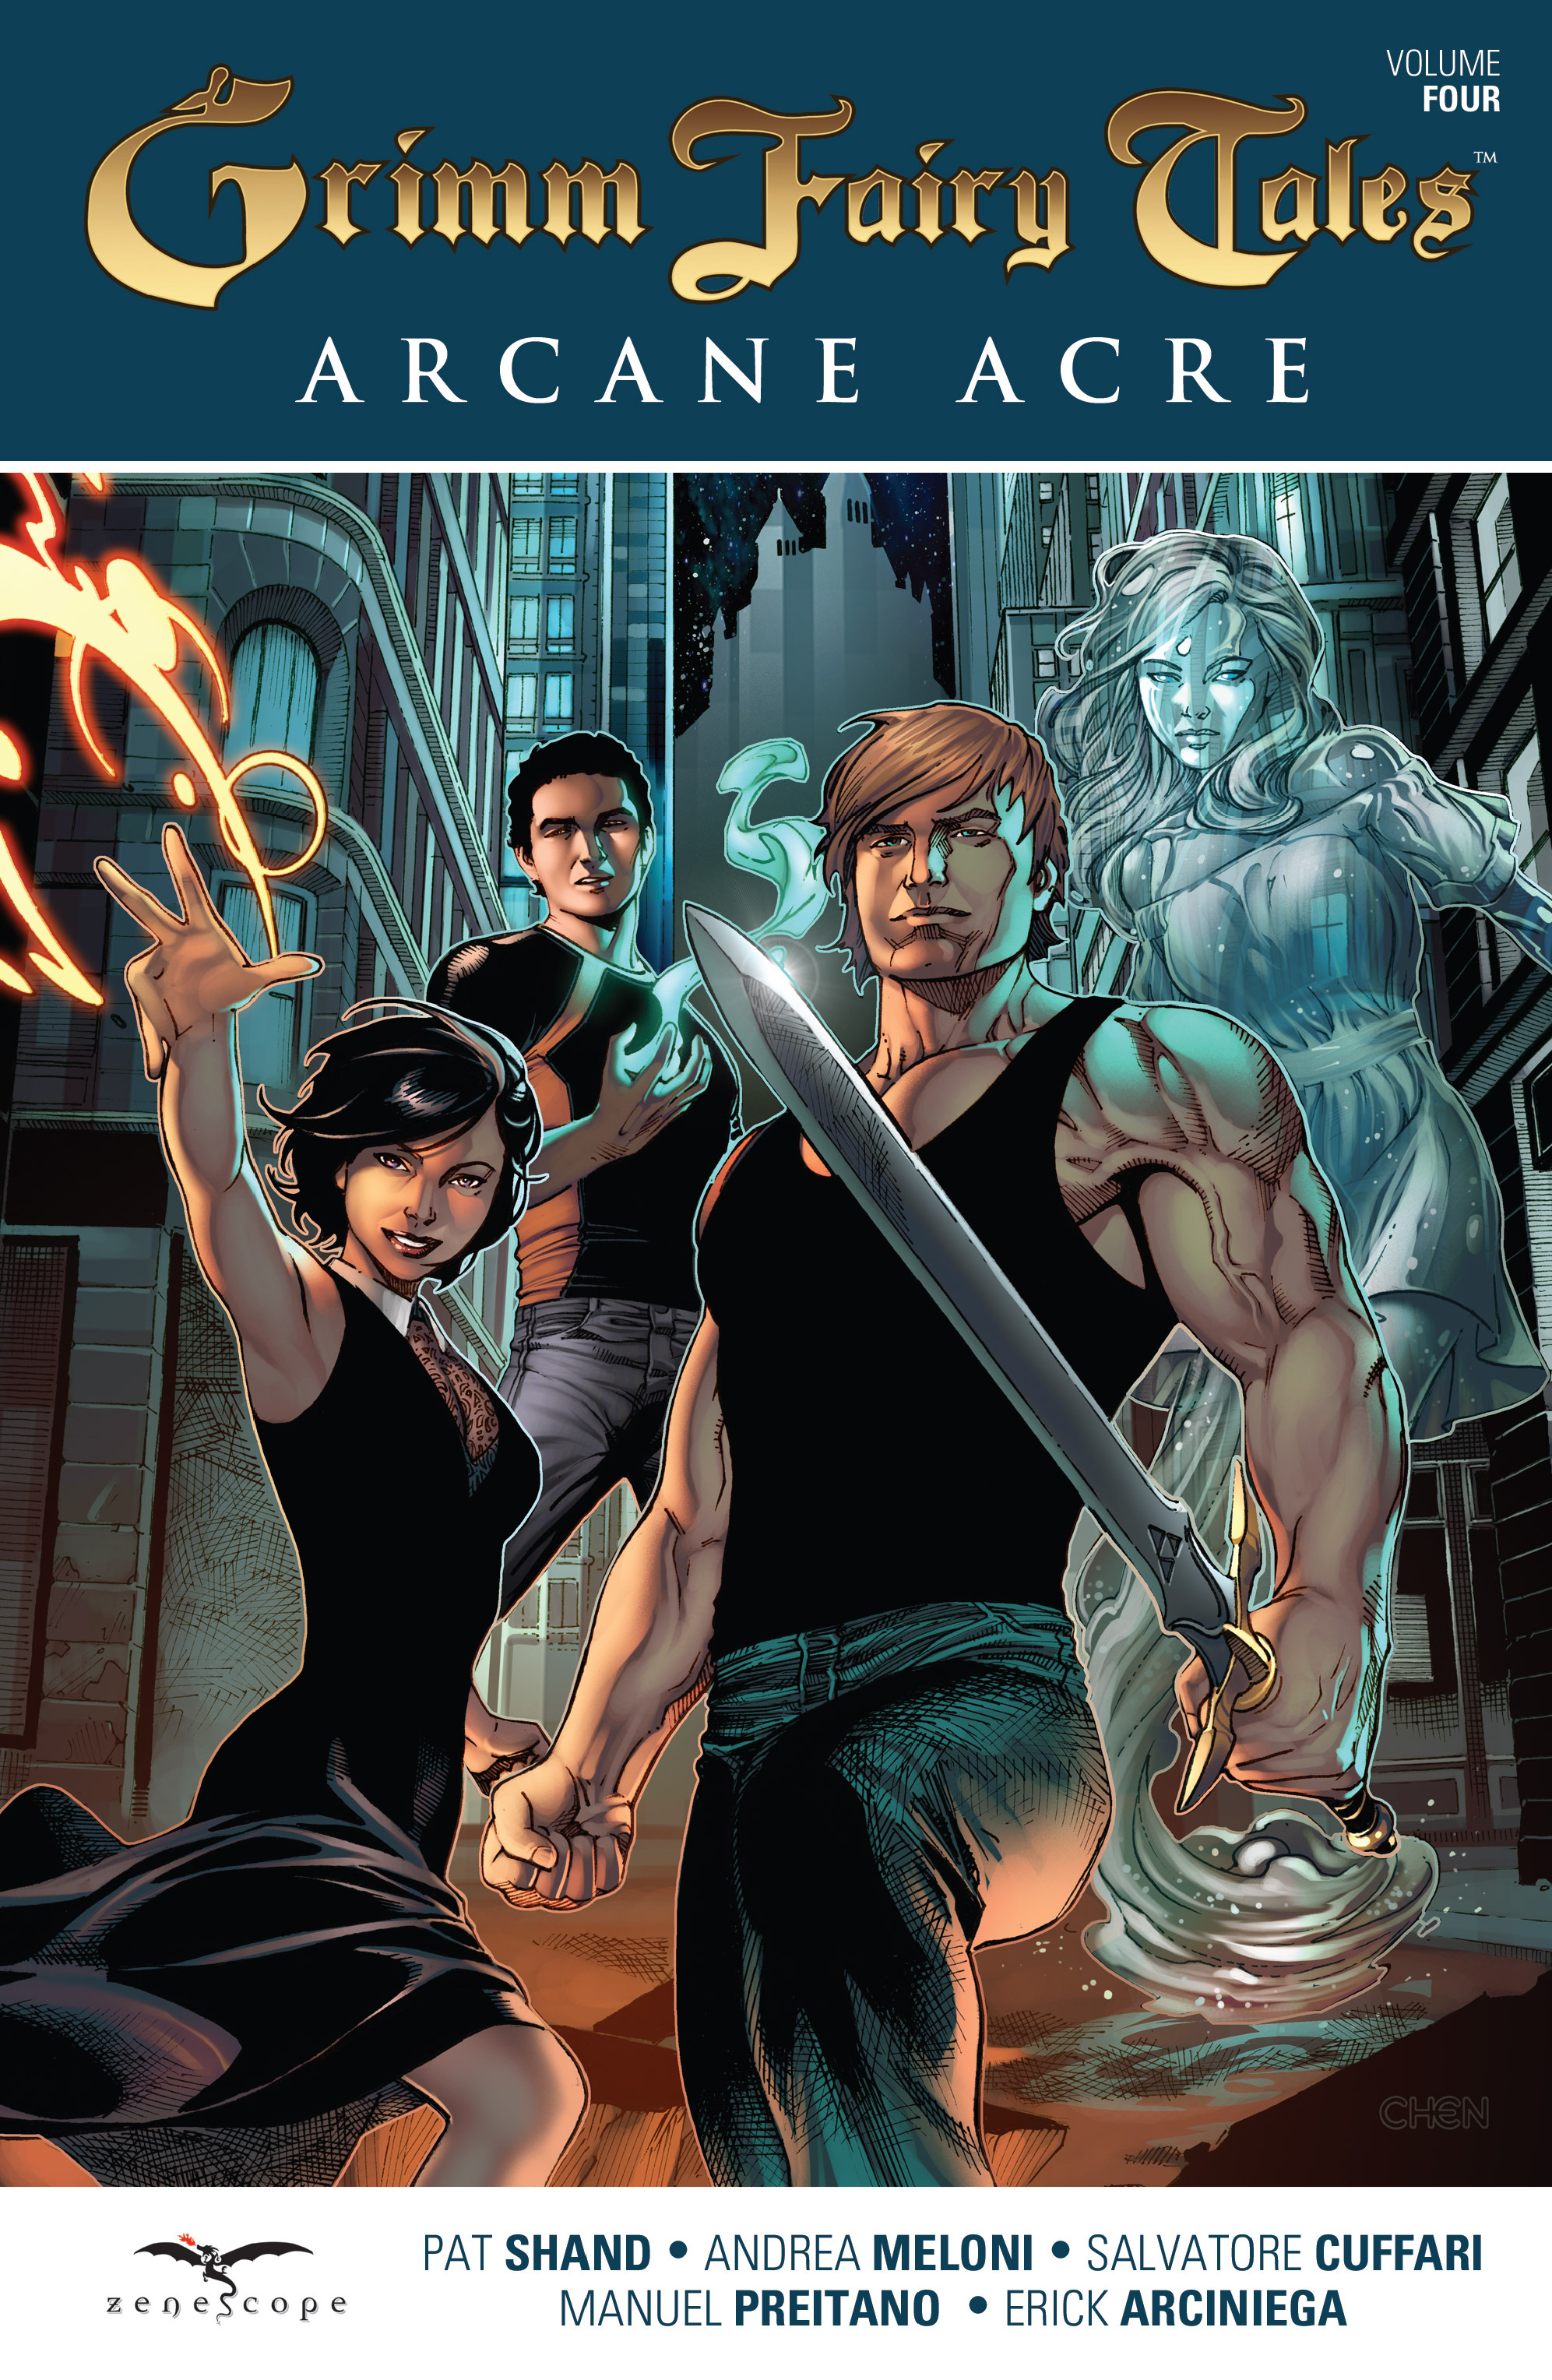 Read online Grimm Fairy Tales: Arcane Acre comic -  Issue # TPB 4 - 1